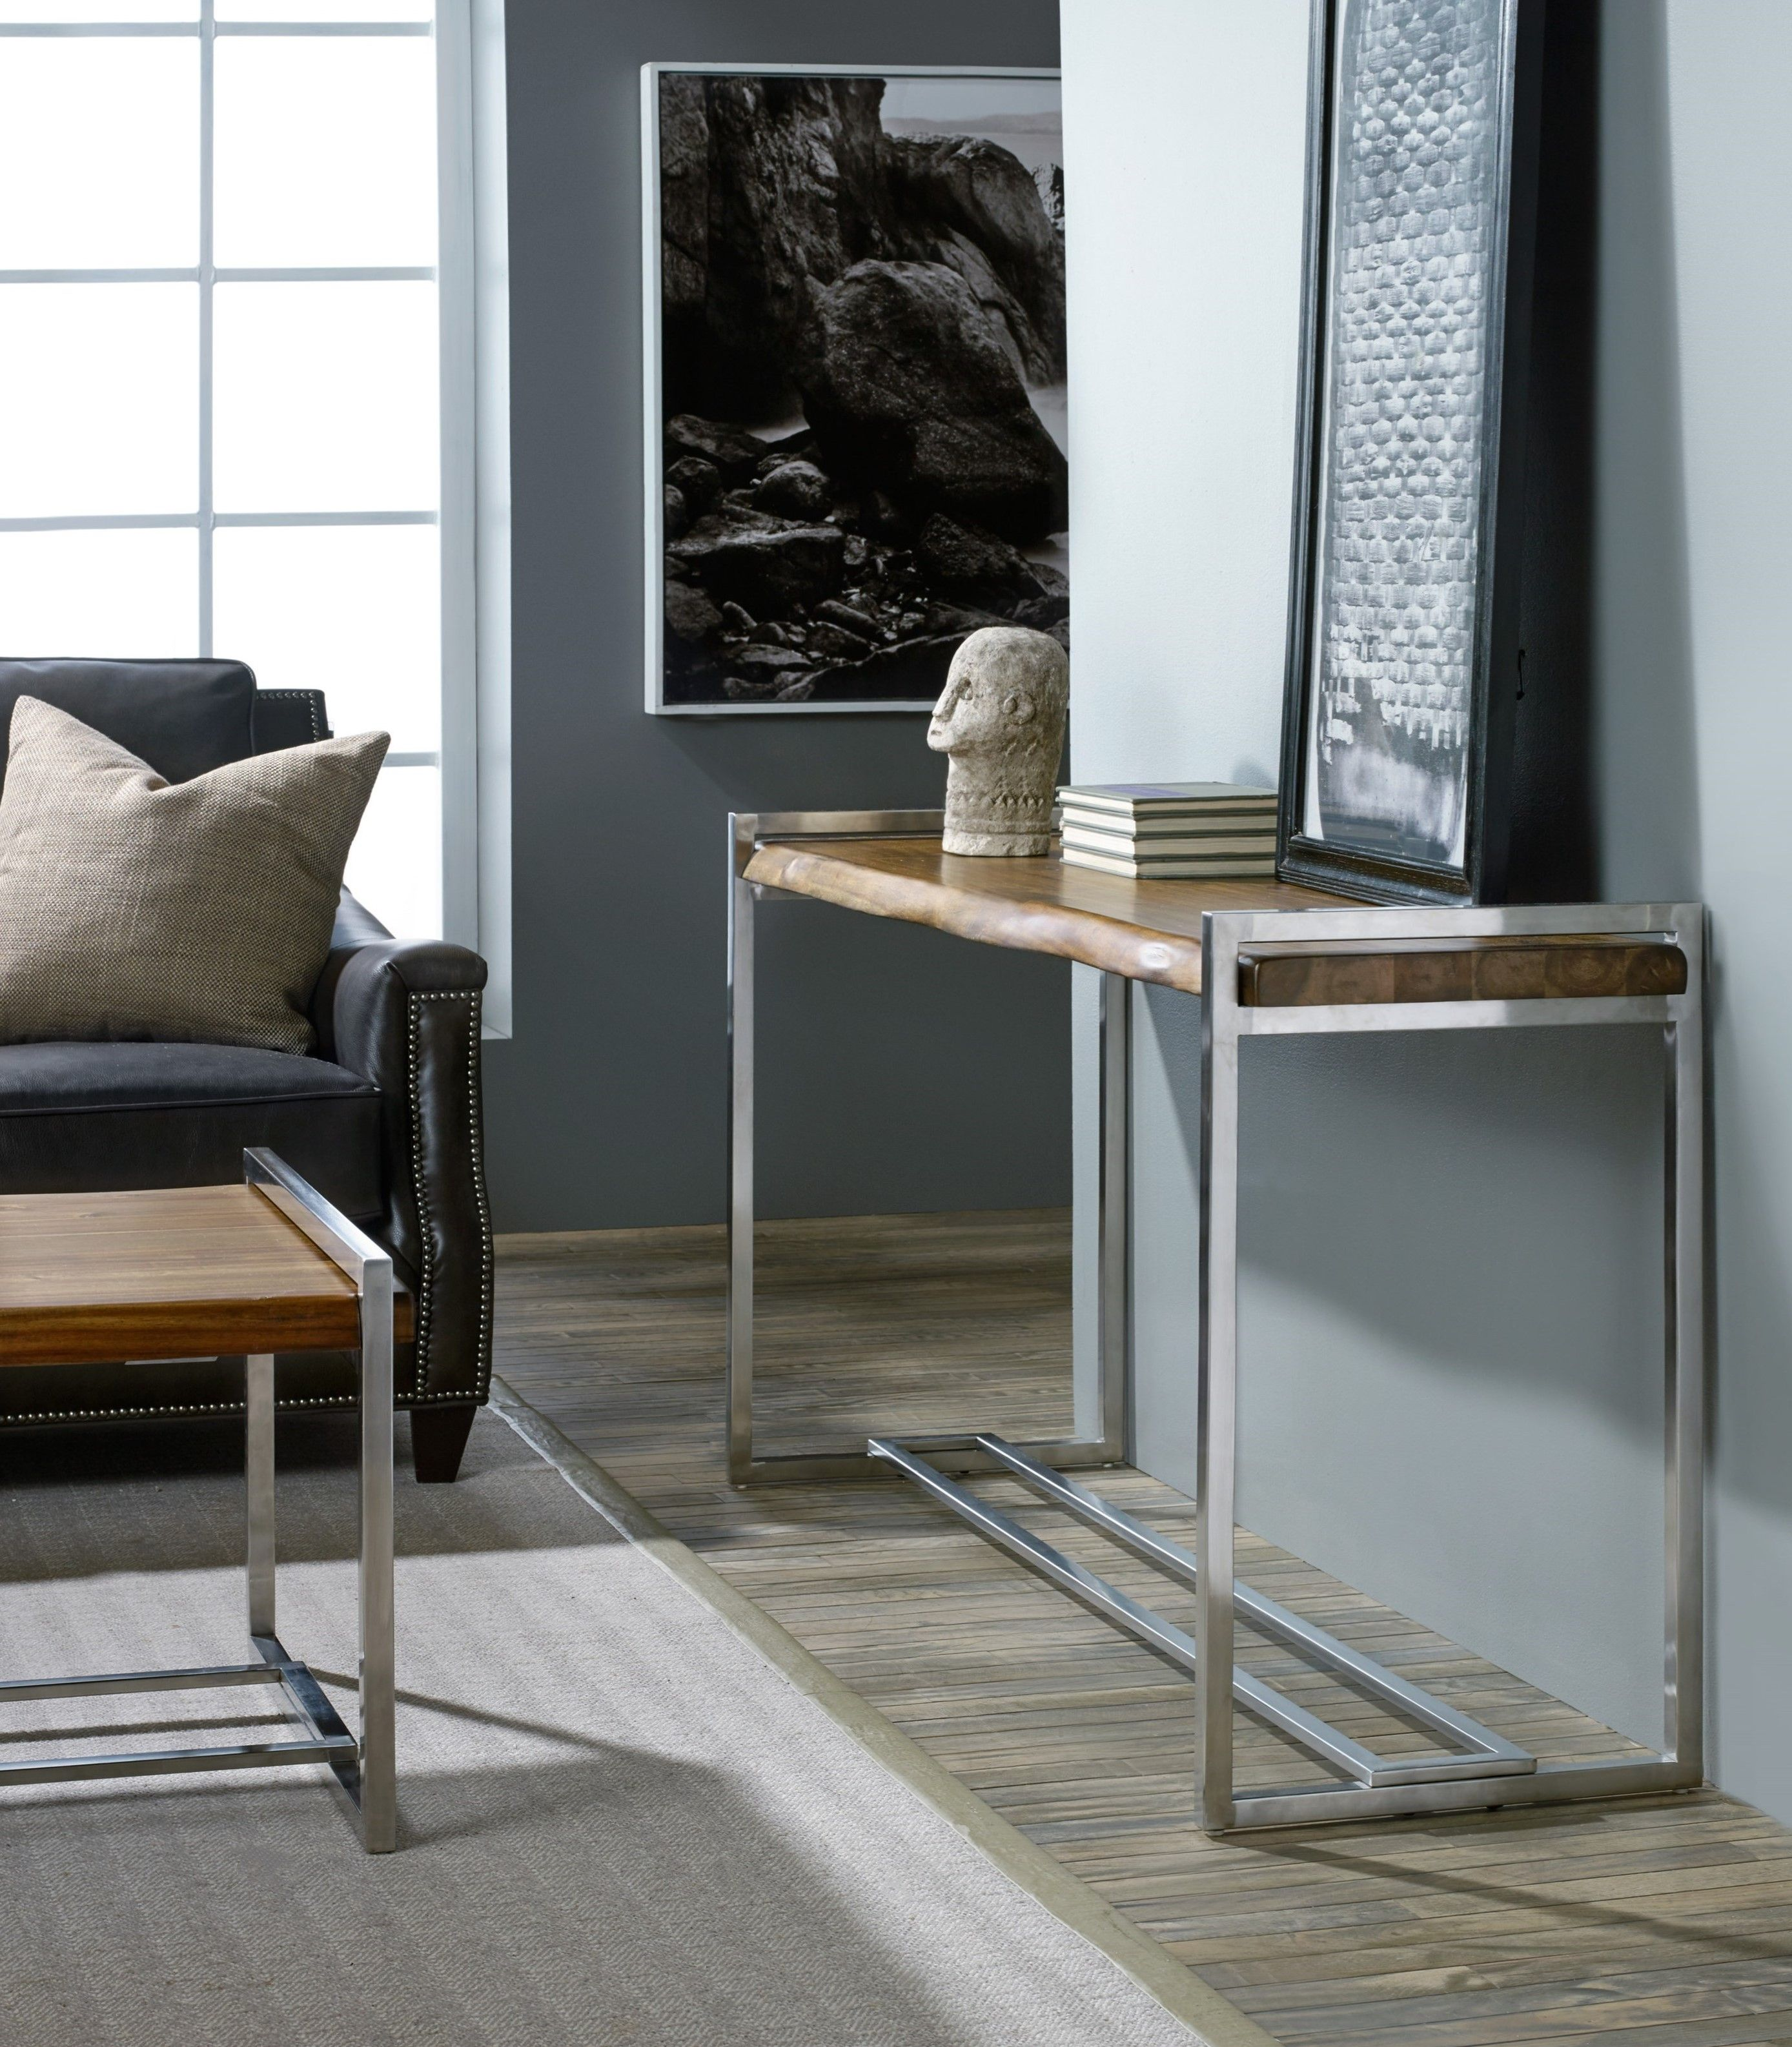 This console table takes the best of industrial and rustic styles as